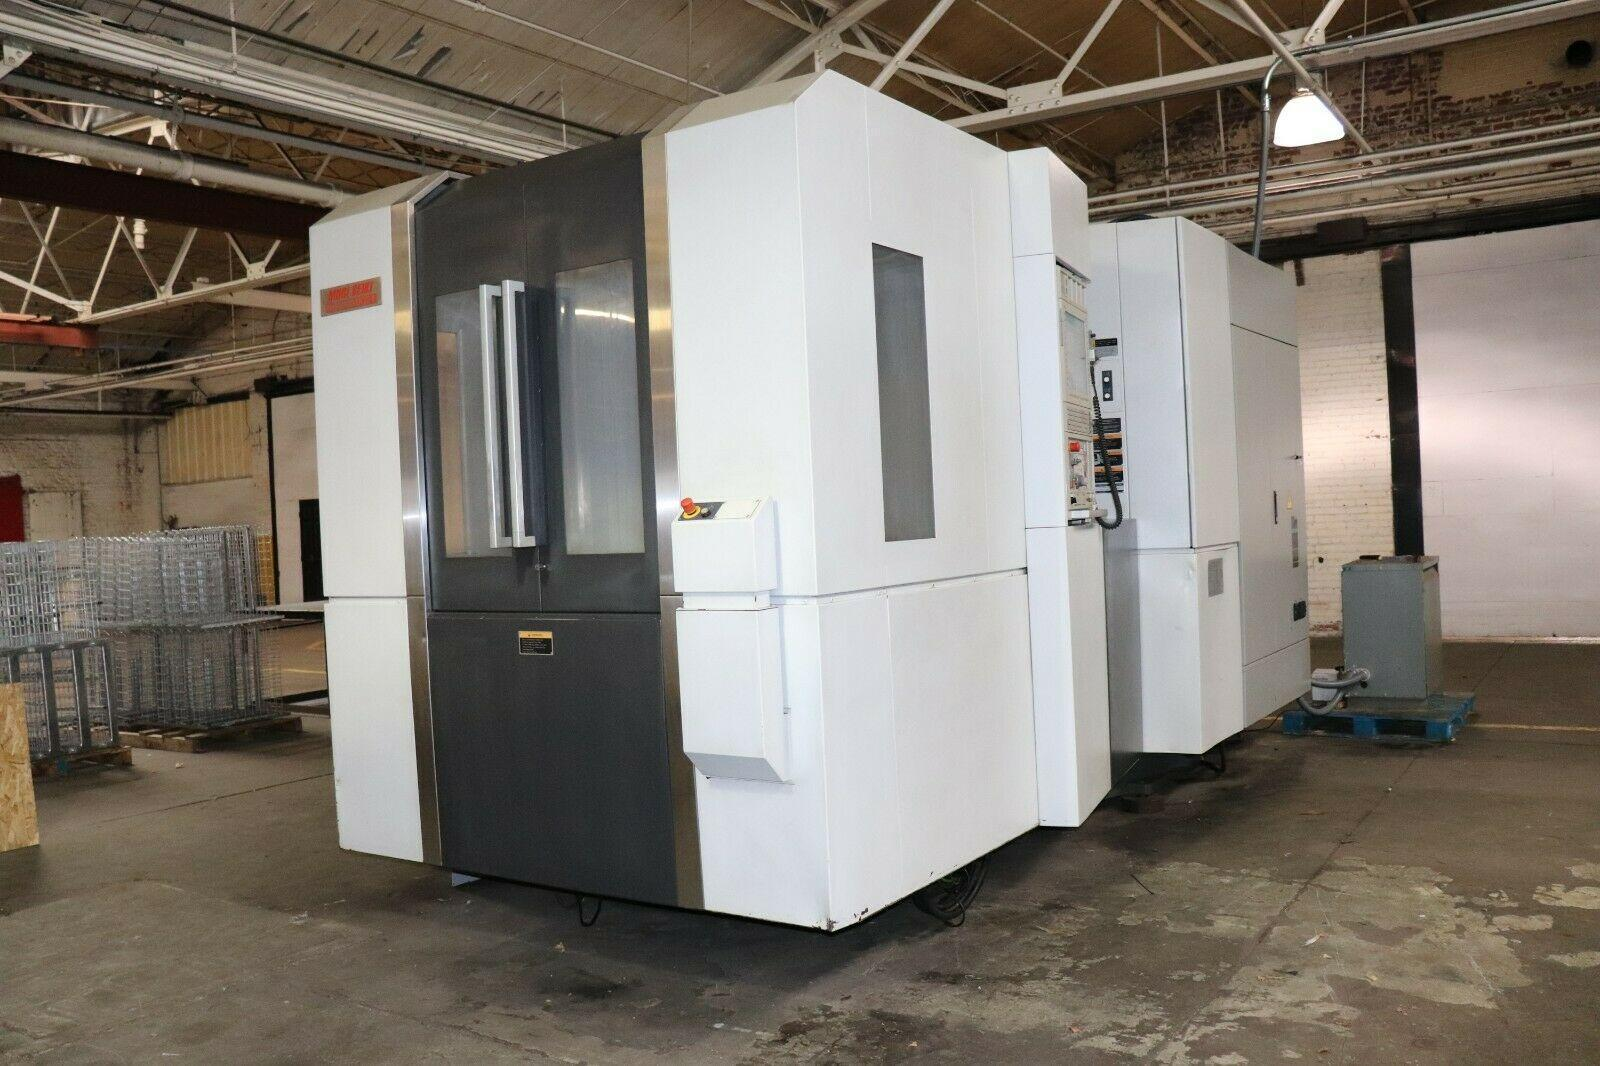 Mori Seiki NH6300dcg II Horiztonal Machining Center